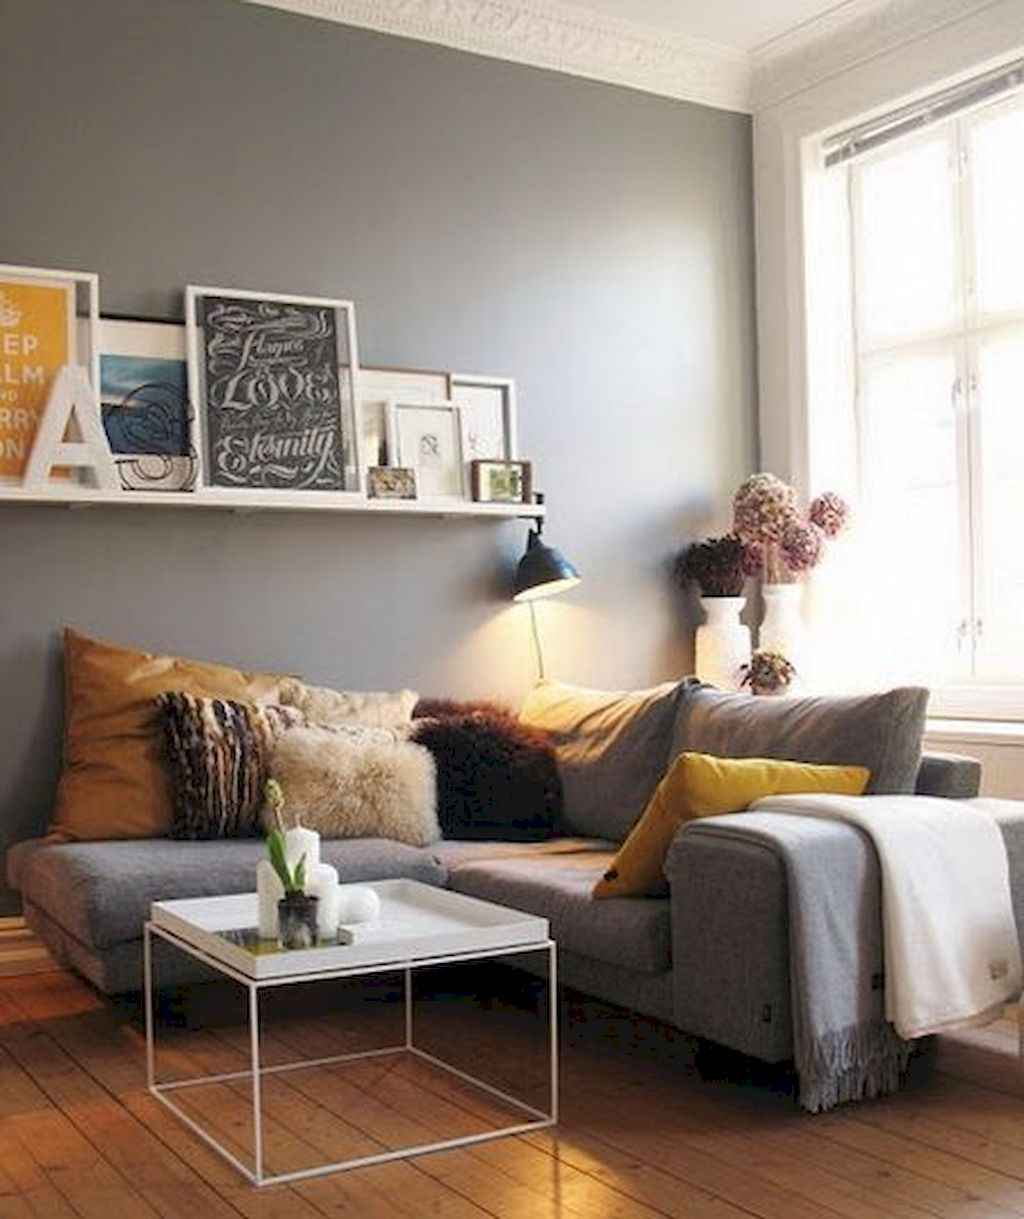 Cozy apartment decorating ideas on a budget (84)